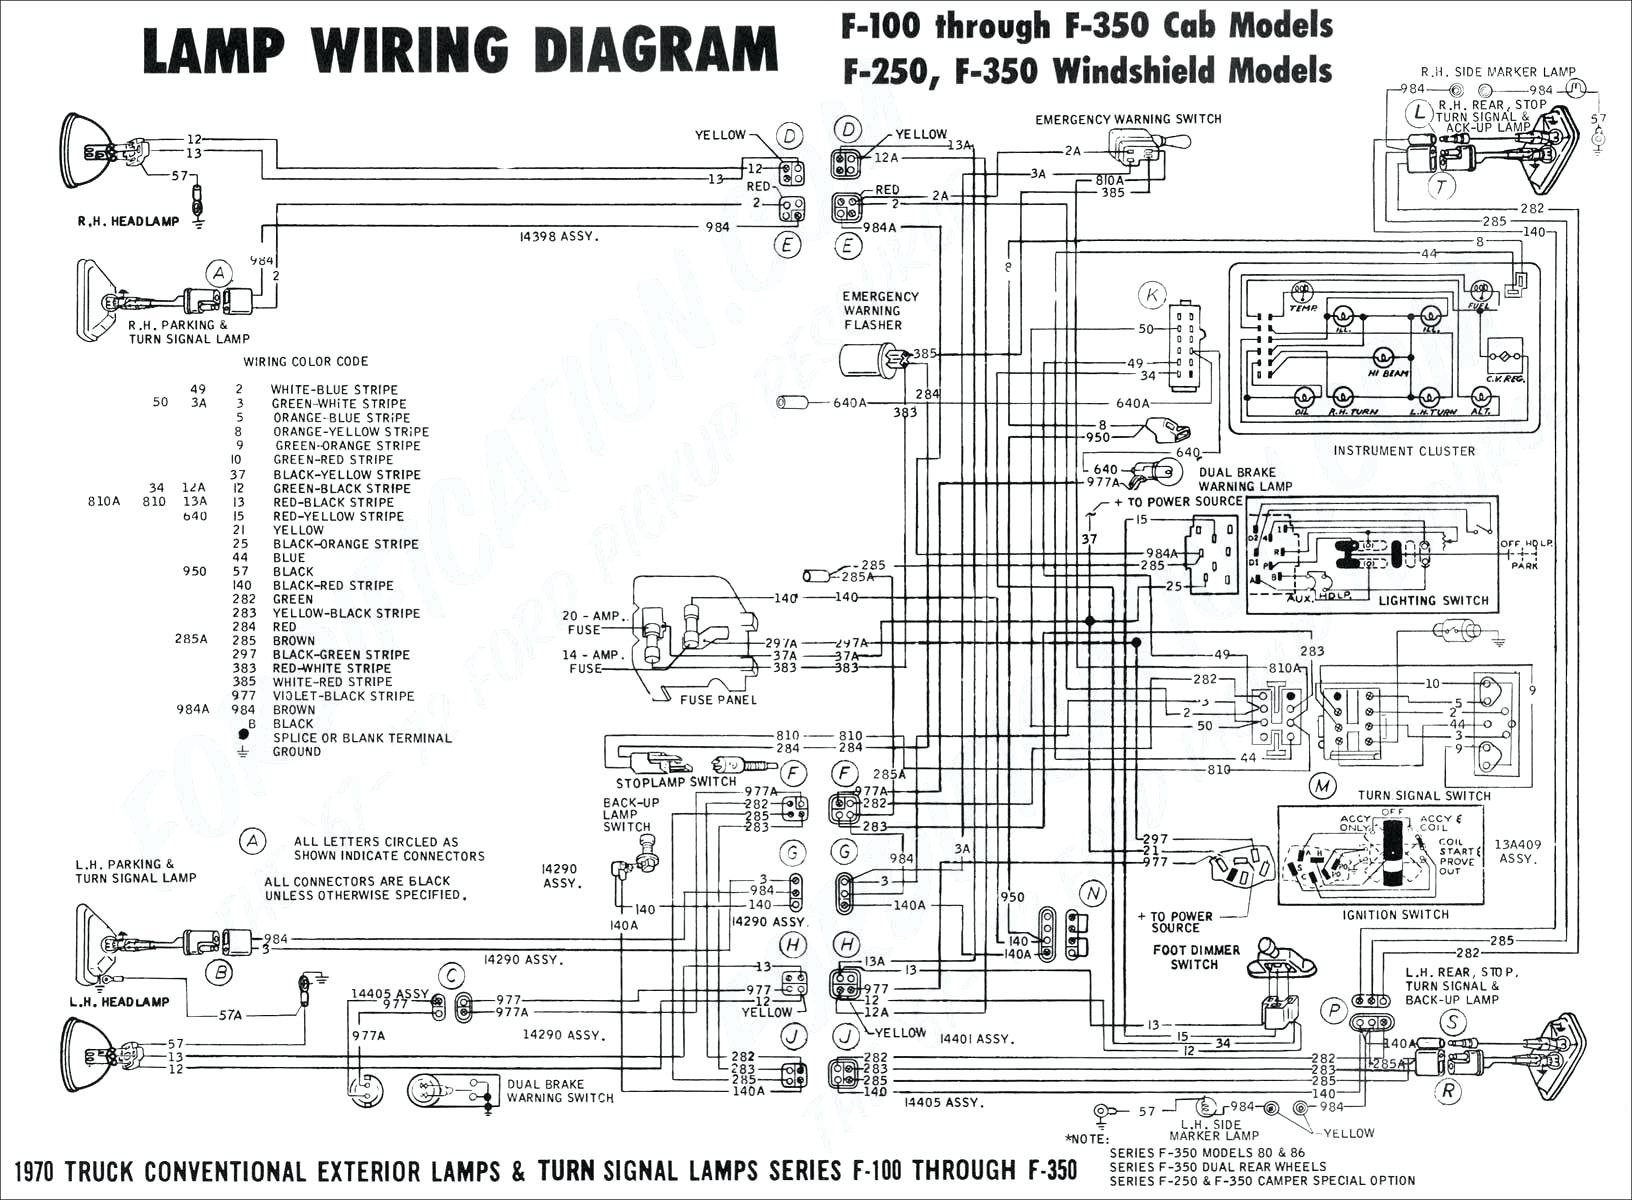 Tail Light Wiring Diagram Ford F150 | Wiring Diagram on